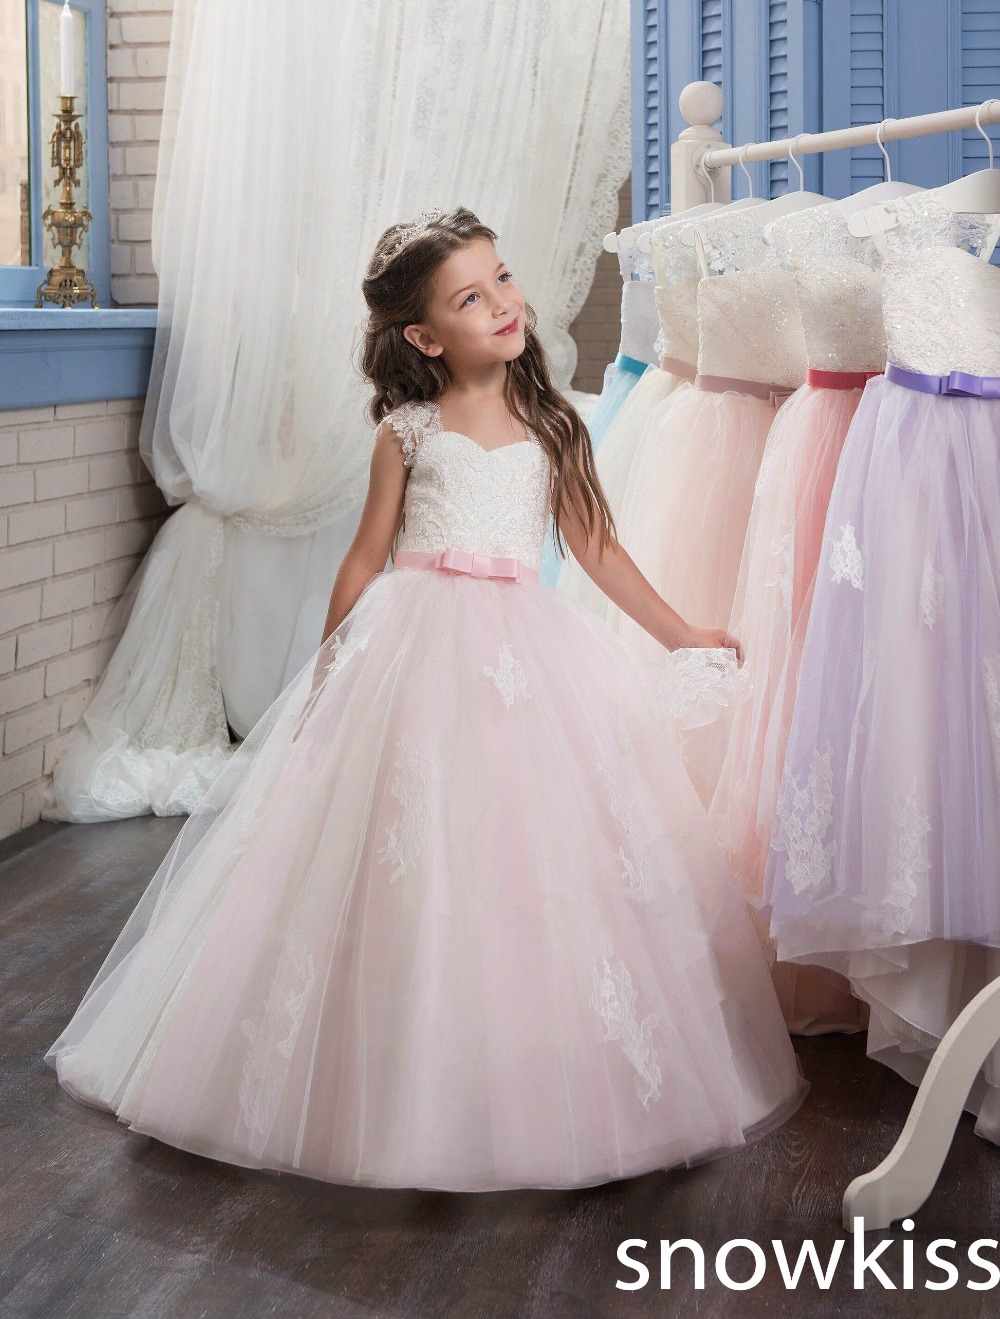 Blush pink first communion dress tulle ball gown sweetheart flower girl dresses with lace appliques kids pageant prom dresses мфу pantum m6500 ч б a4 22ppm 1200x1200dpi usb черный